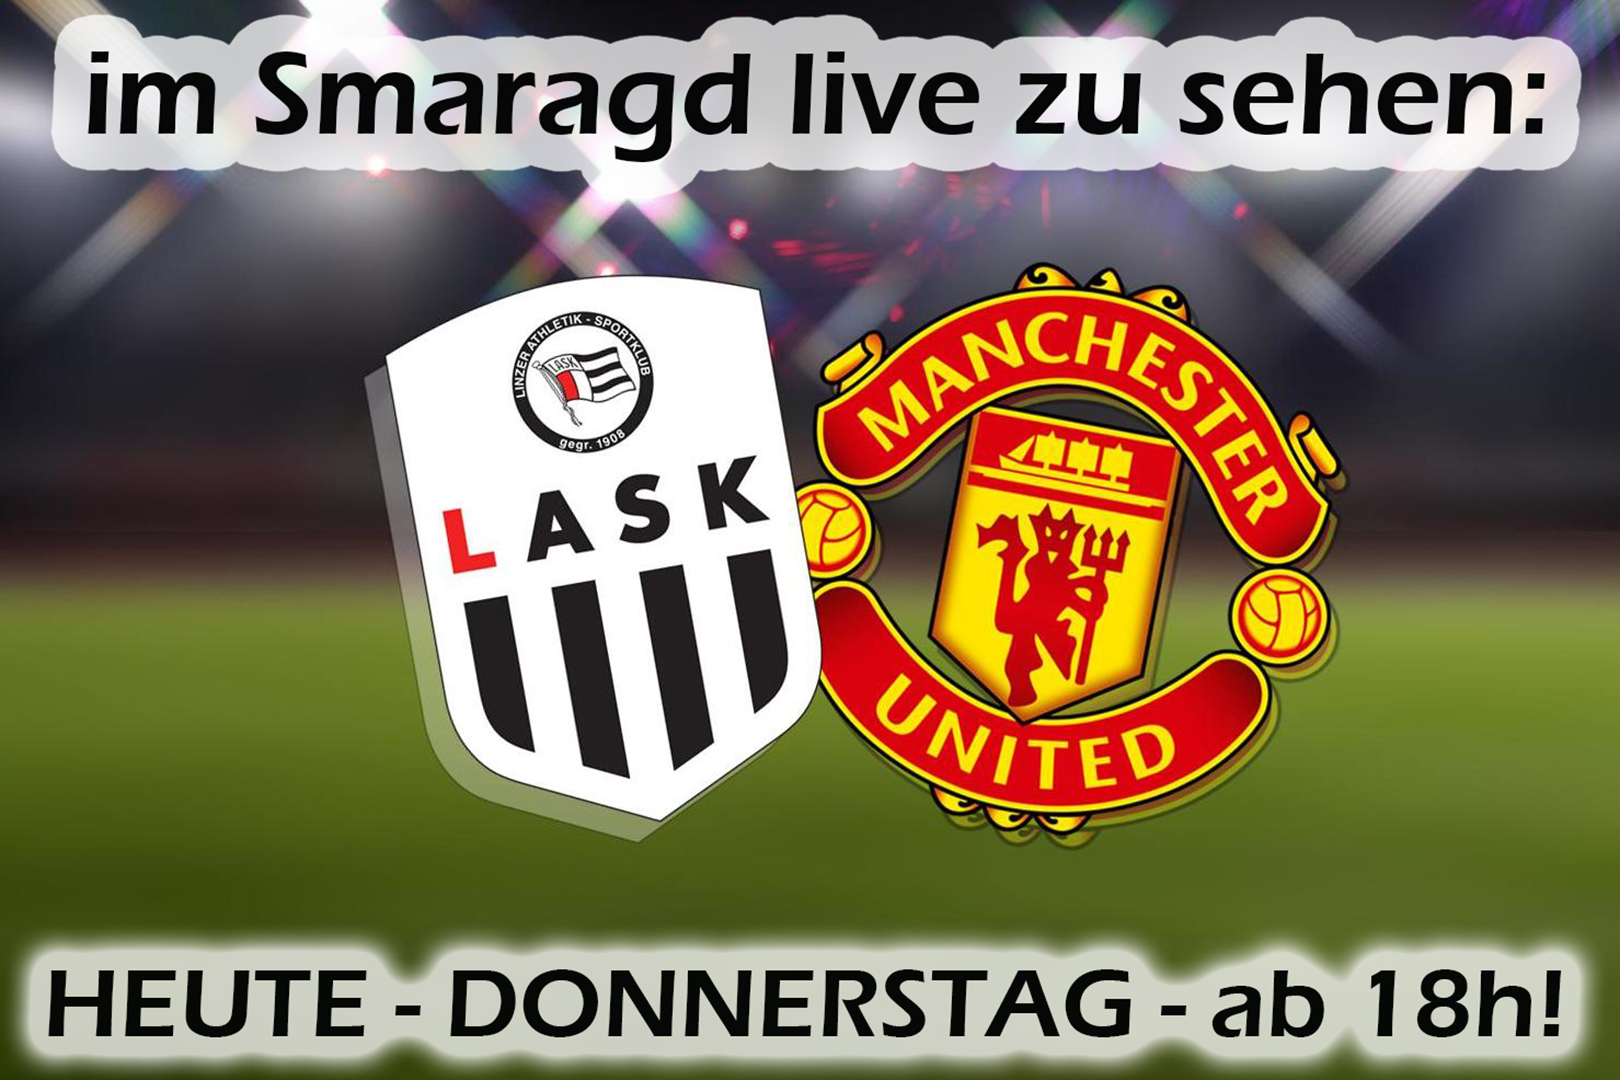 lask-manchester-united